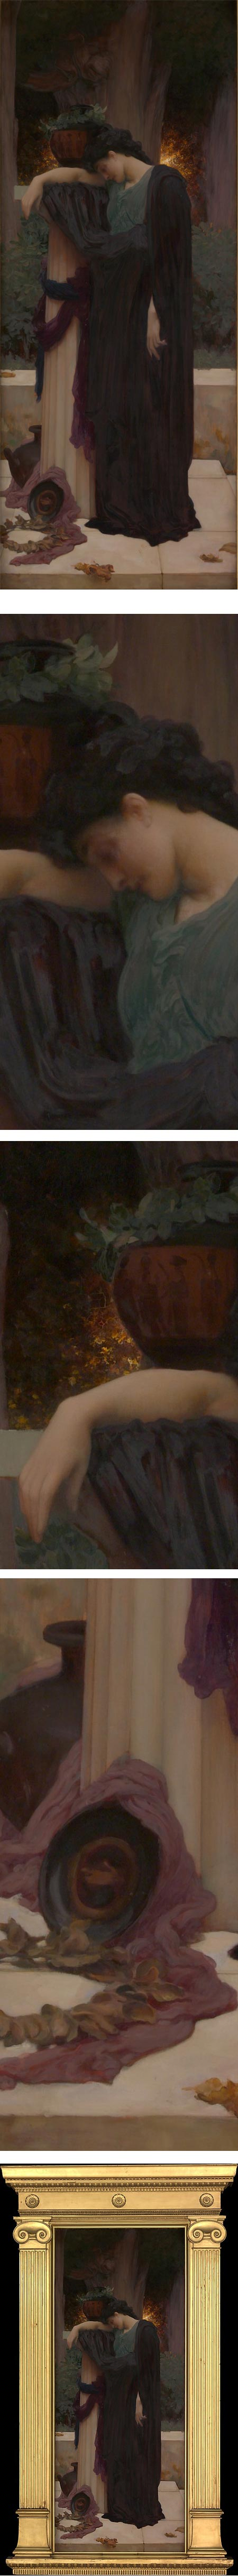 Lachrymae by Frederic, Lord Leighton